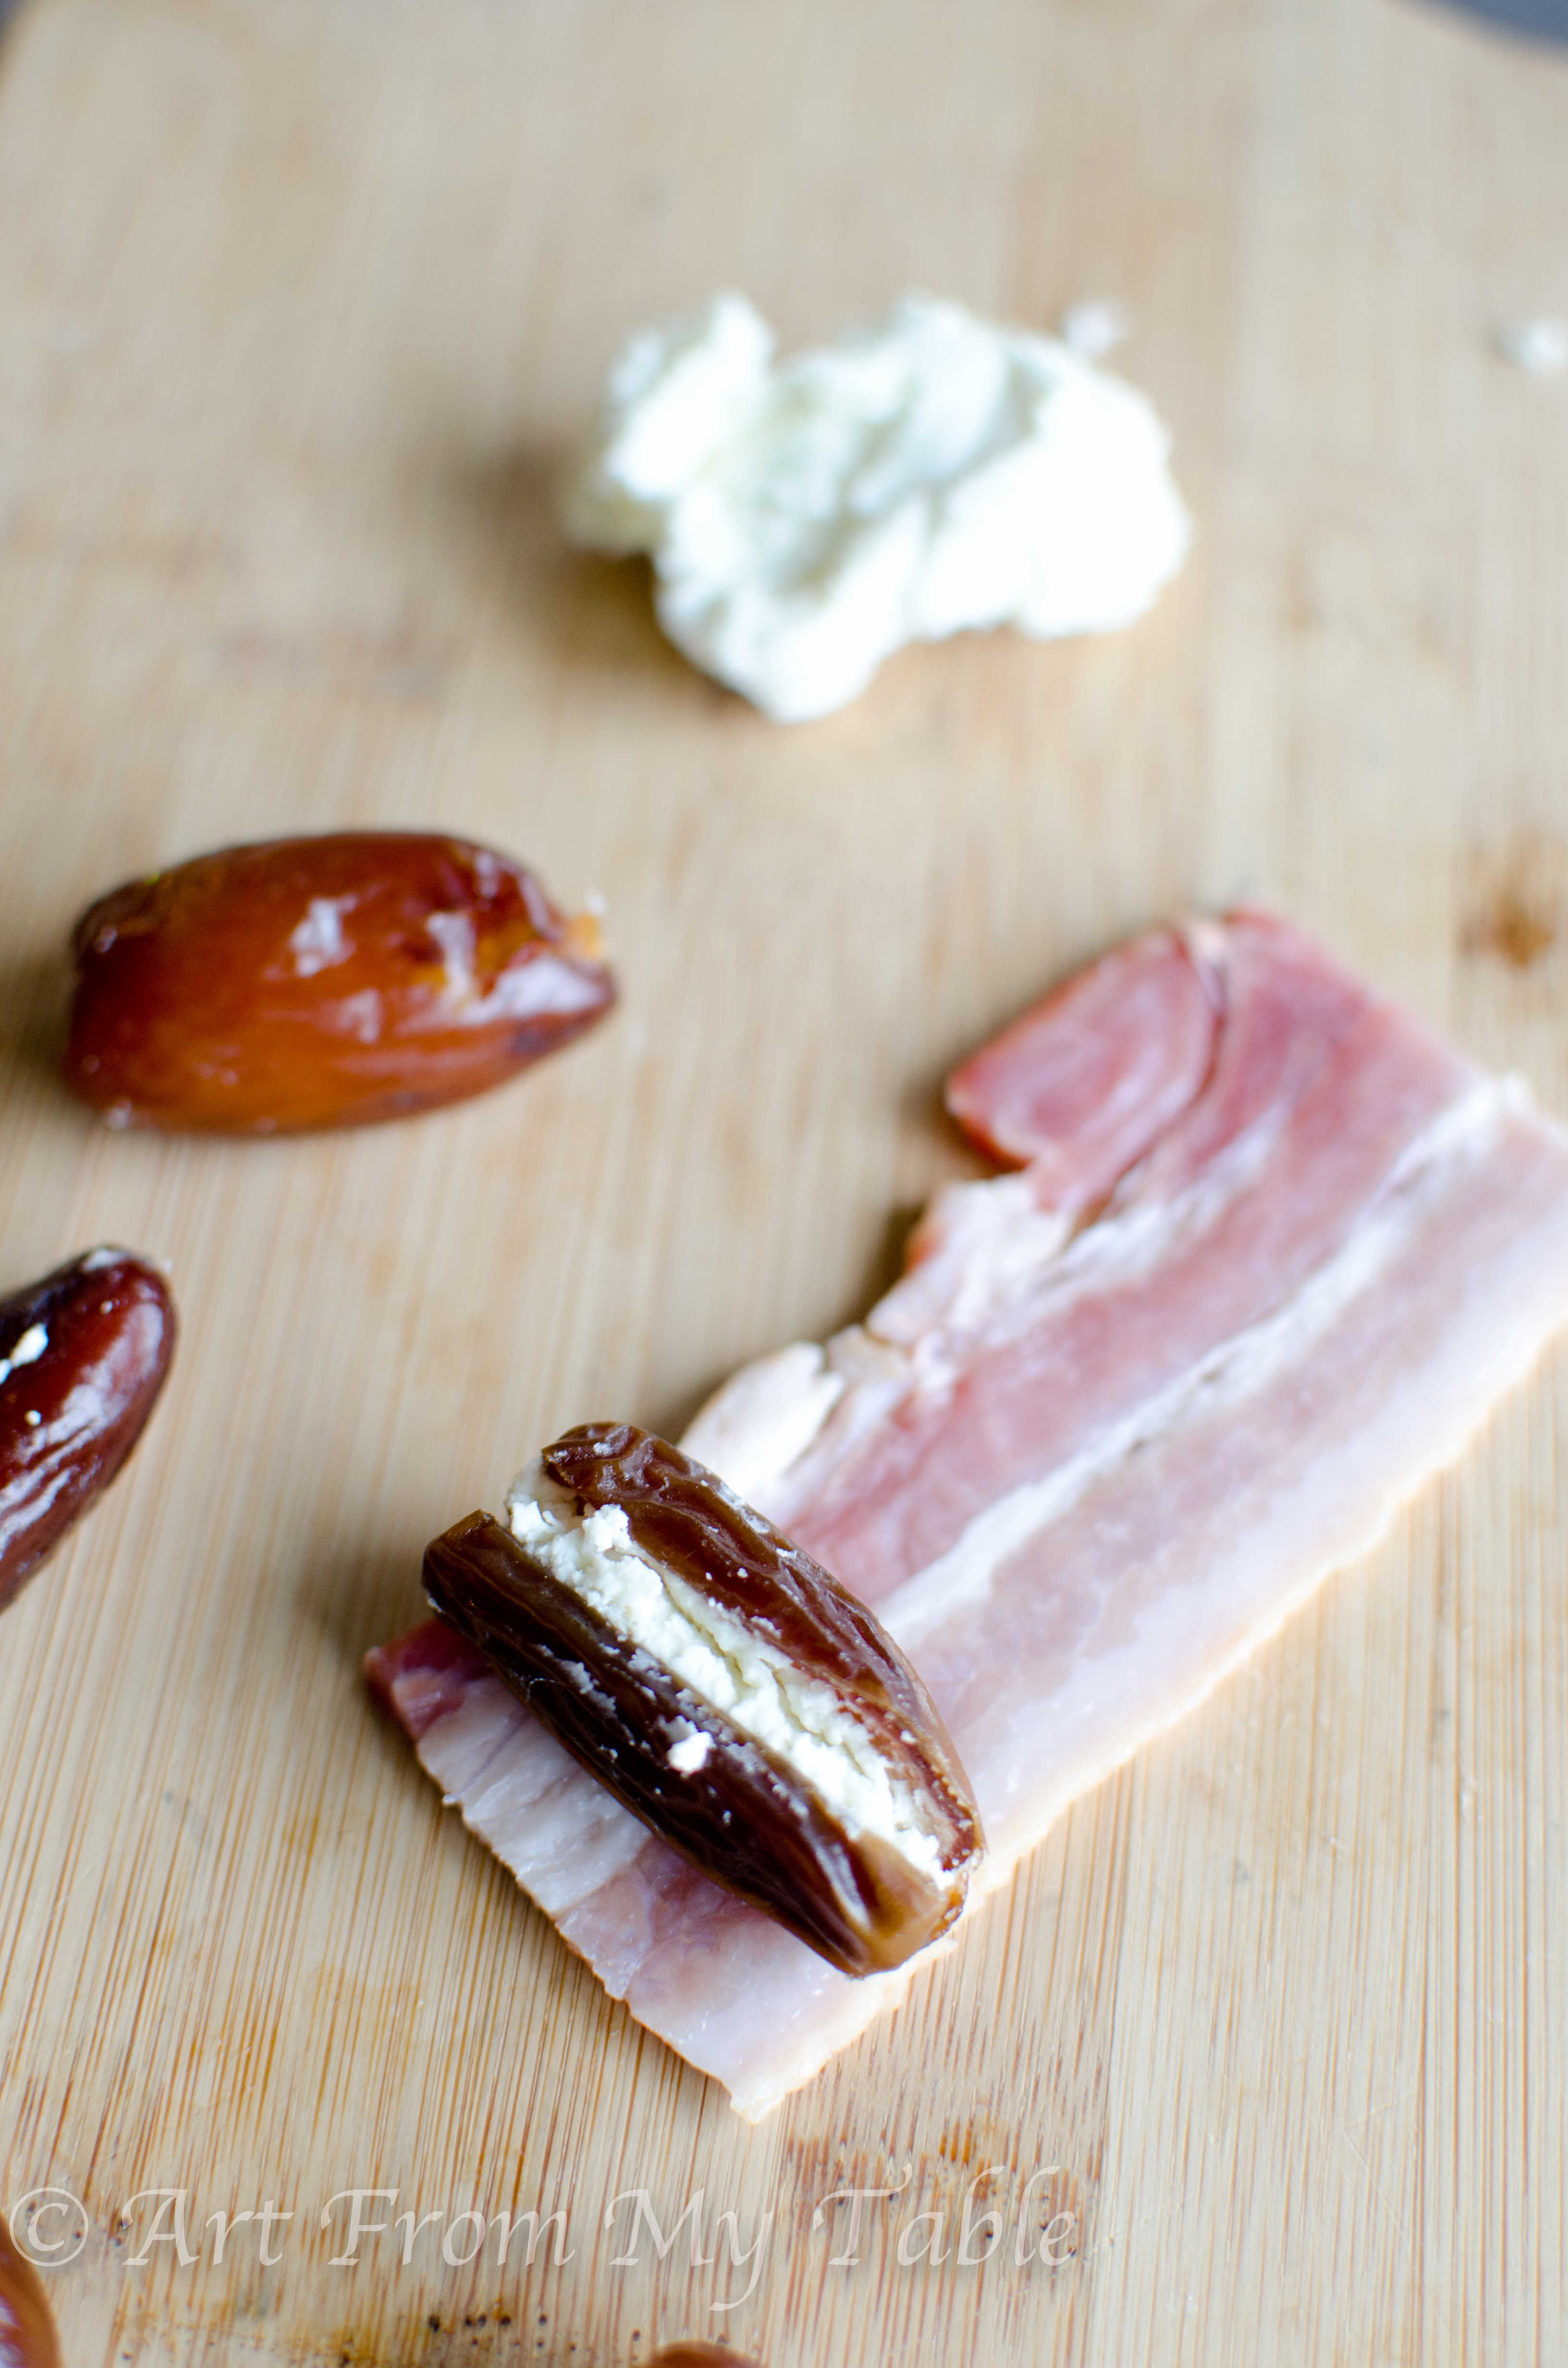 ... Appetizer: Bacon Wrapped Dates. - Nibbles of Tidbits, a Food Blog